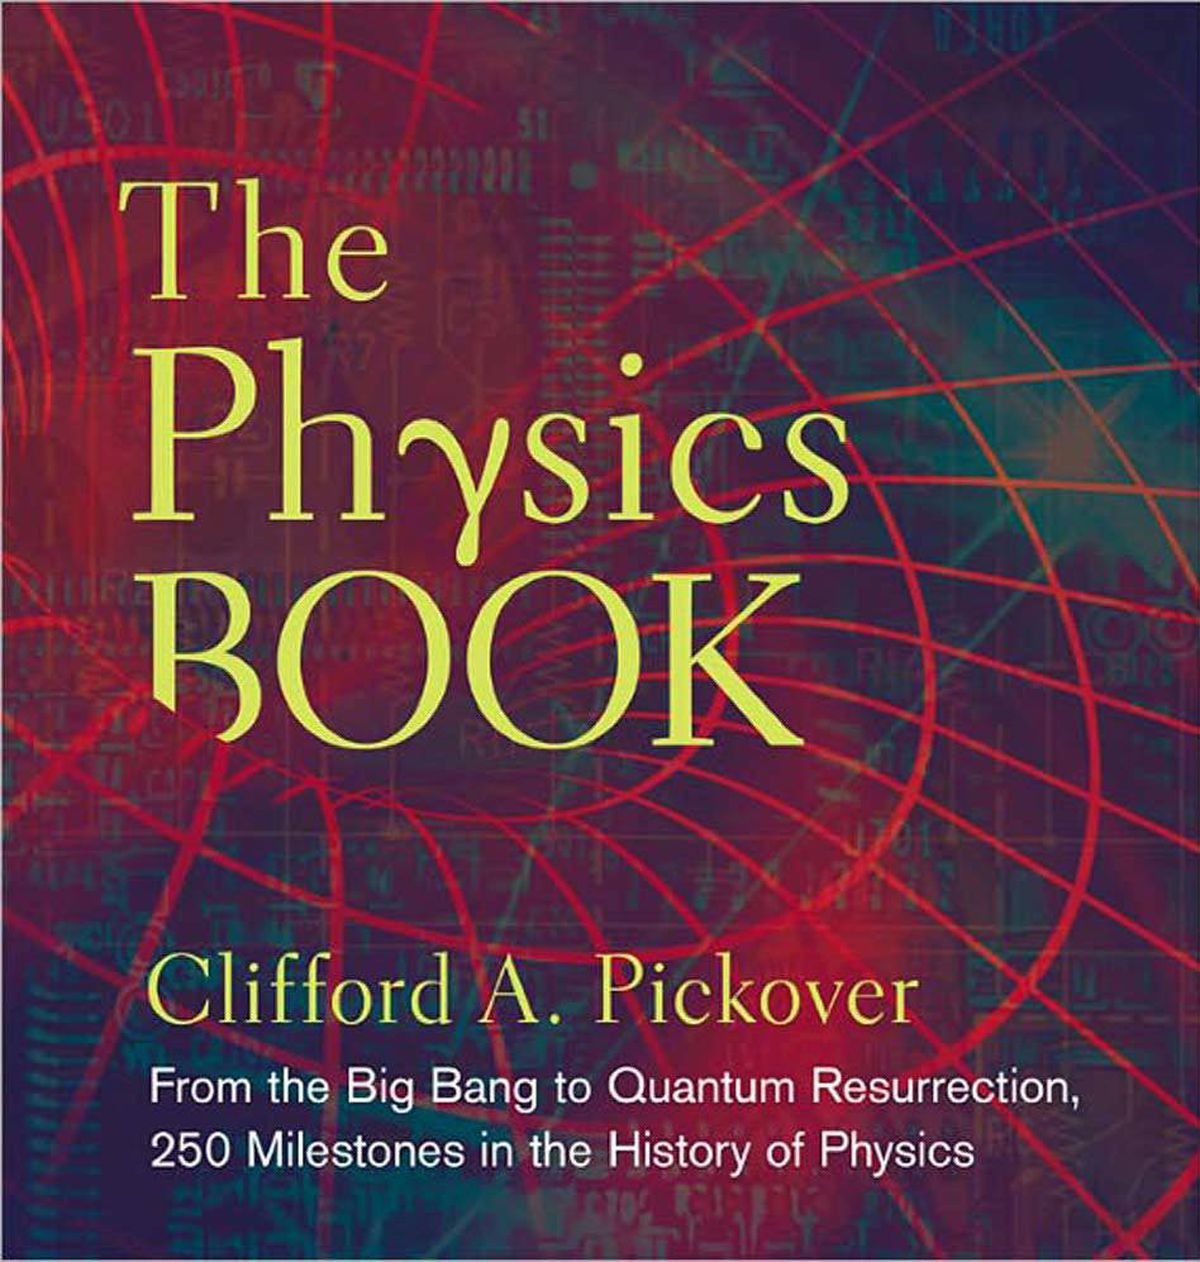 THE PHYSICS BOOK From the Big Bang to Quantum Resurrection, 250 Milestones in the History of Physics By Clifford A. Pickover (Sterling, 528 pages, $32.95) If you have family debates over string theory, this is probably a tad simple for you. But if you're looking for an overview of the Big Ideas – and the subatomic ones – this book is a treat. Illustrated and arranged in chronological order, it'll give you a leg up on your kid's science homework – or the next cocktail party.